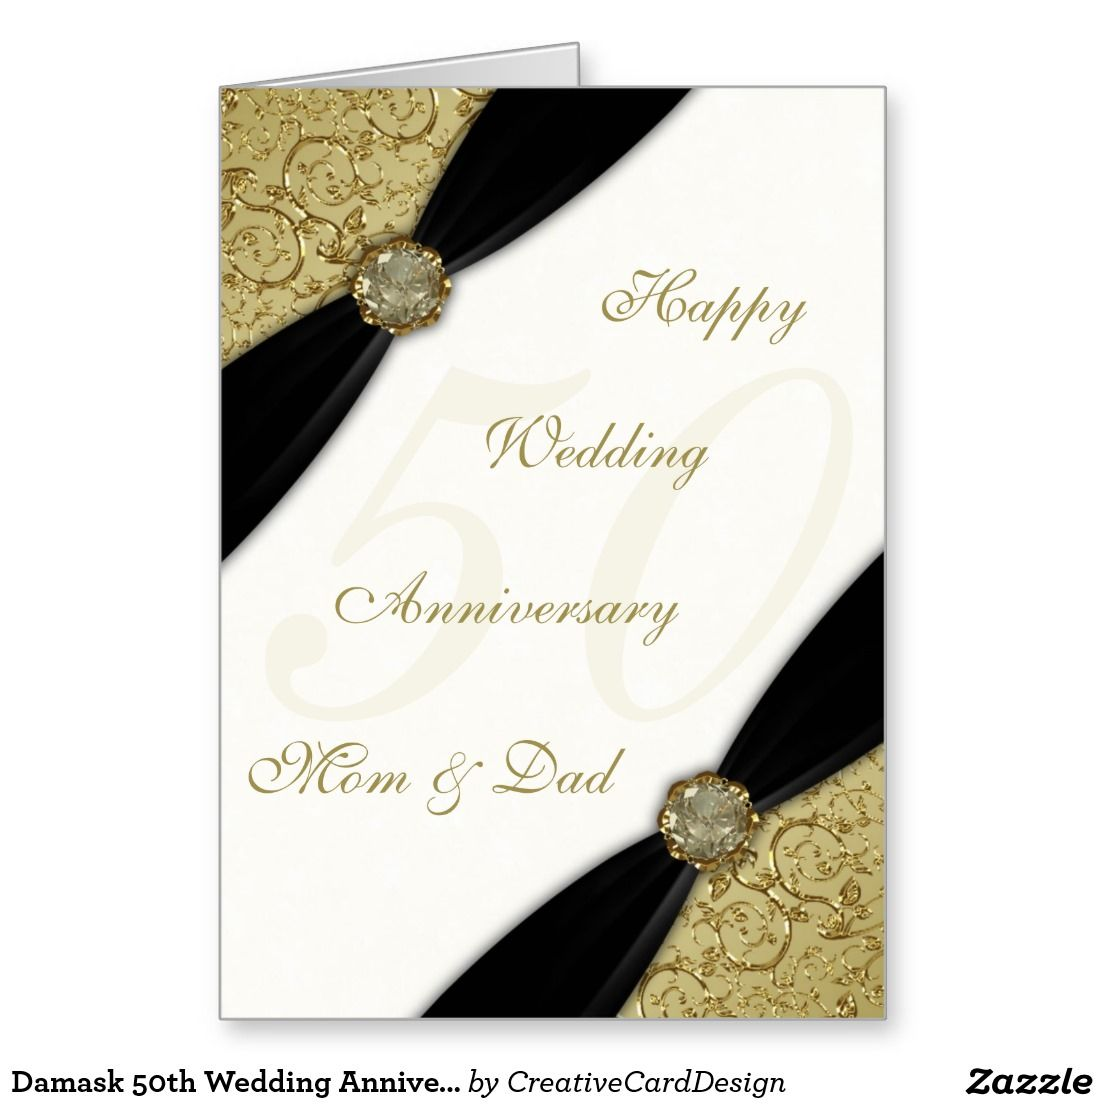 Damask 50th wedding anniversary greeting card wedding anniversary damask 50th wedding anniversary greeting card m4hsunfo